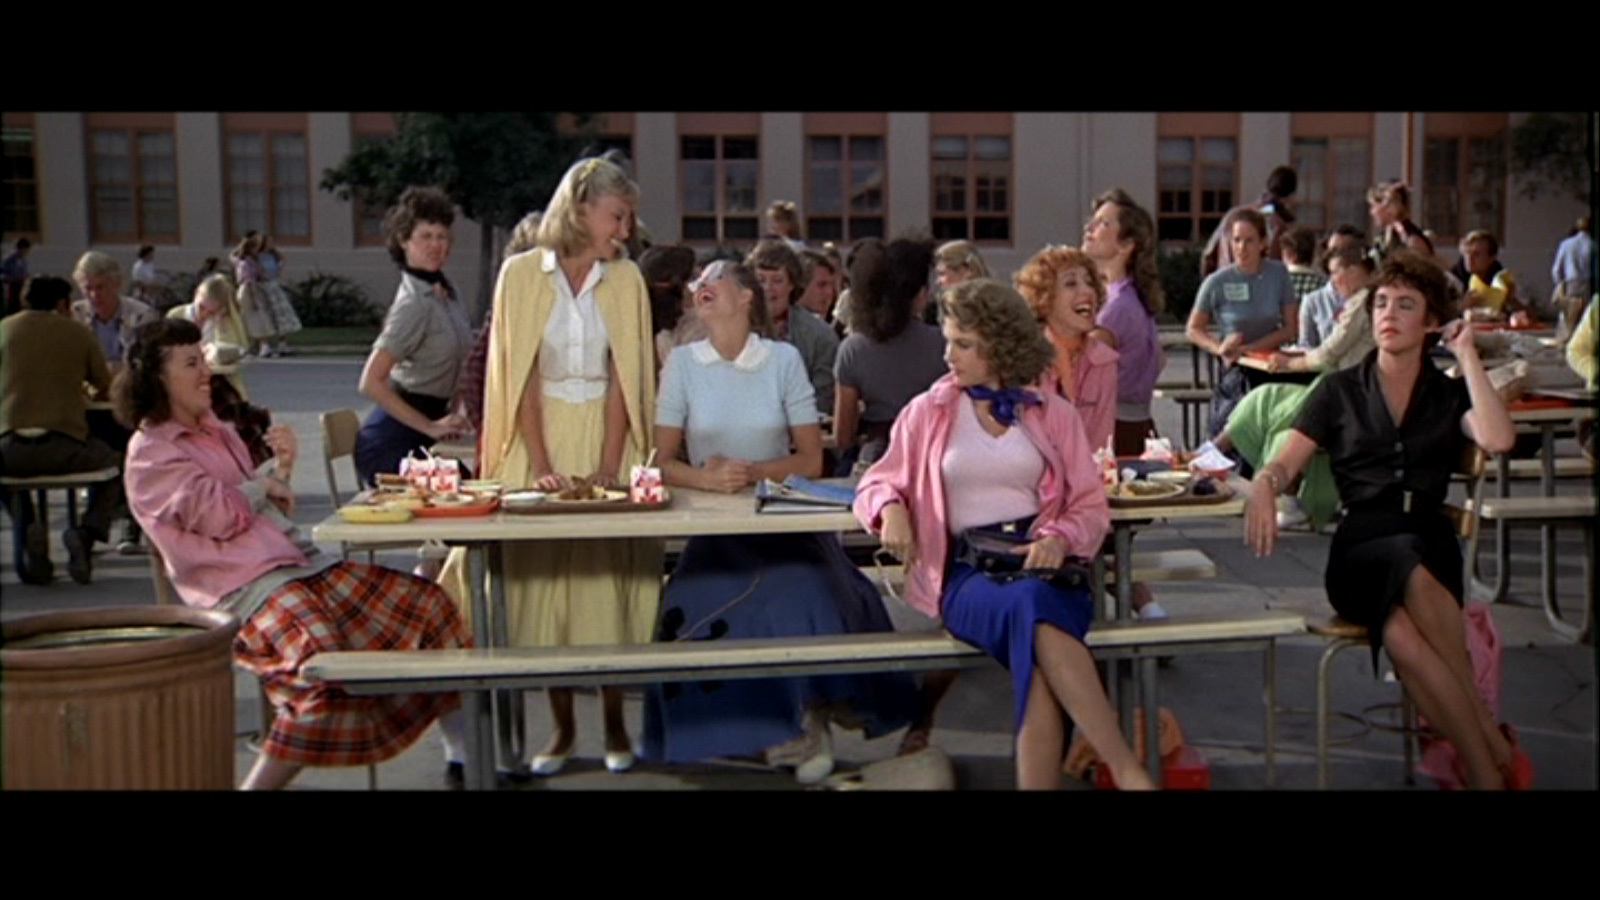 Grease Grease The Movie Image 2984331 Fanpop